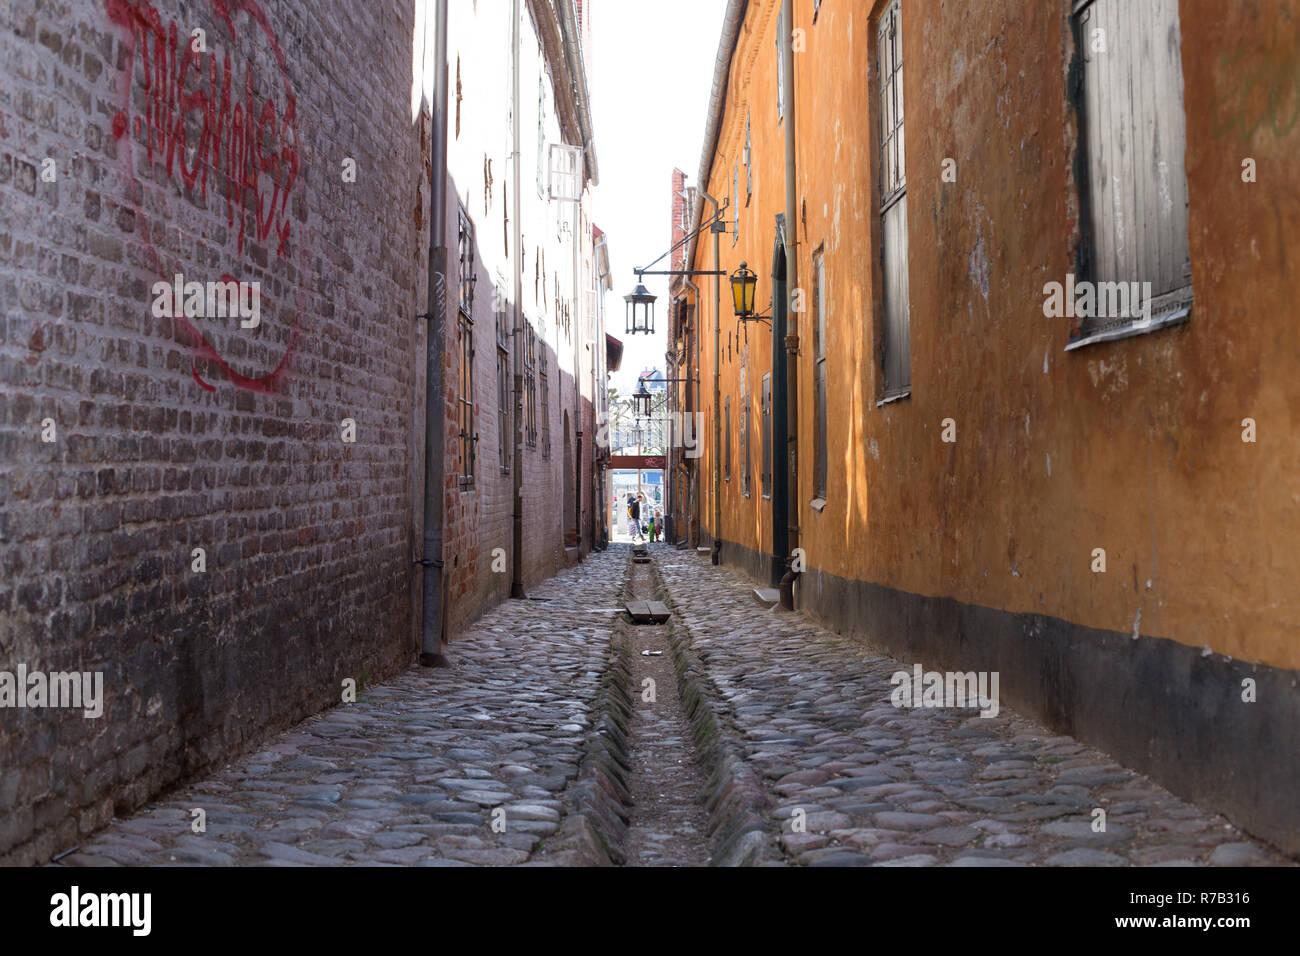 Old narrow strret in Helsingor, Denmark - Stock Image